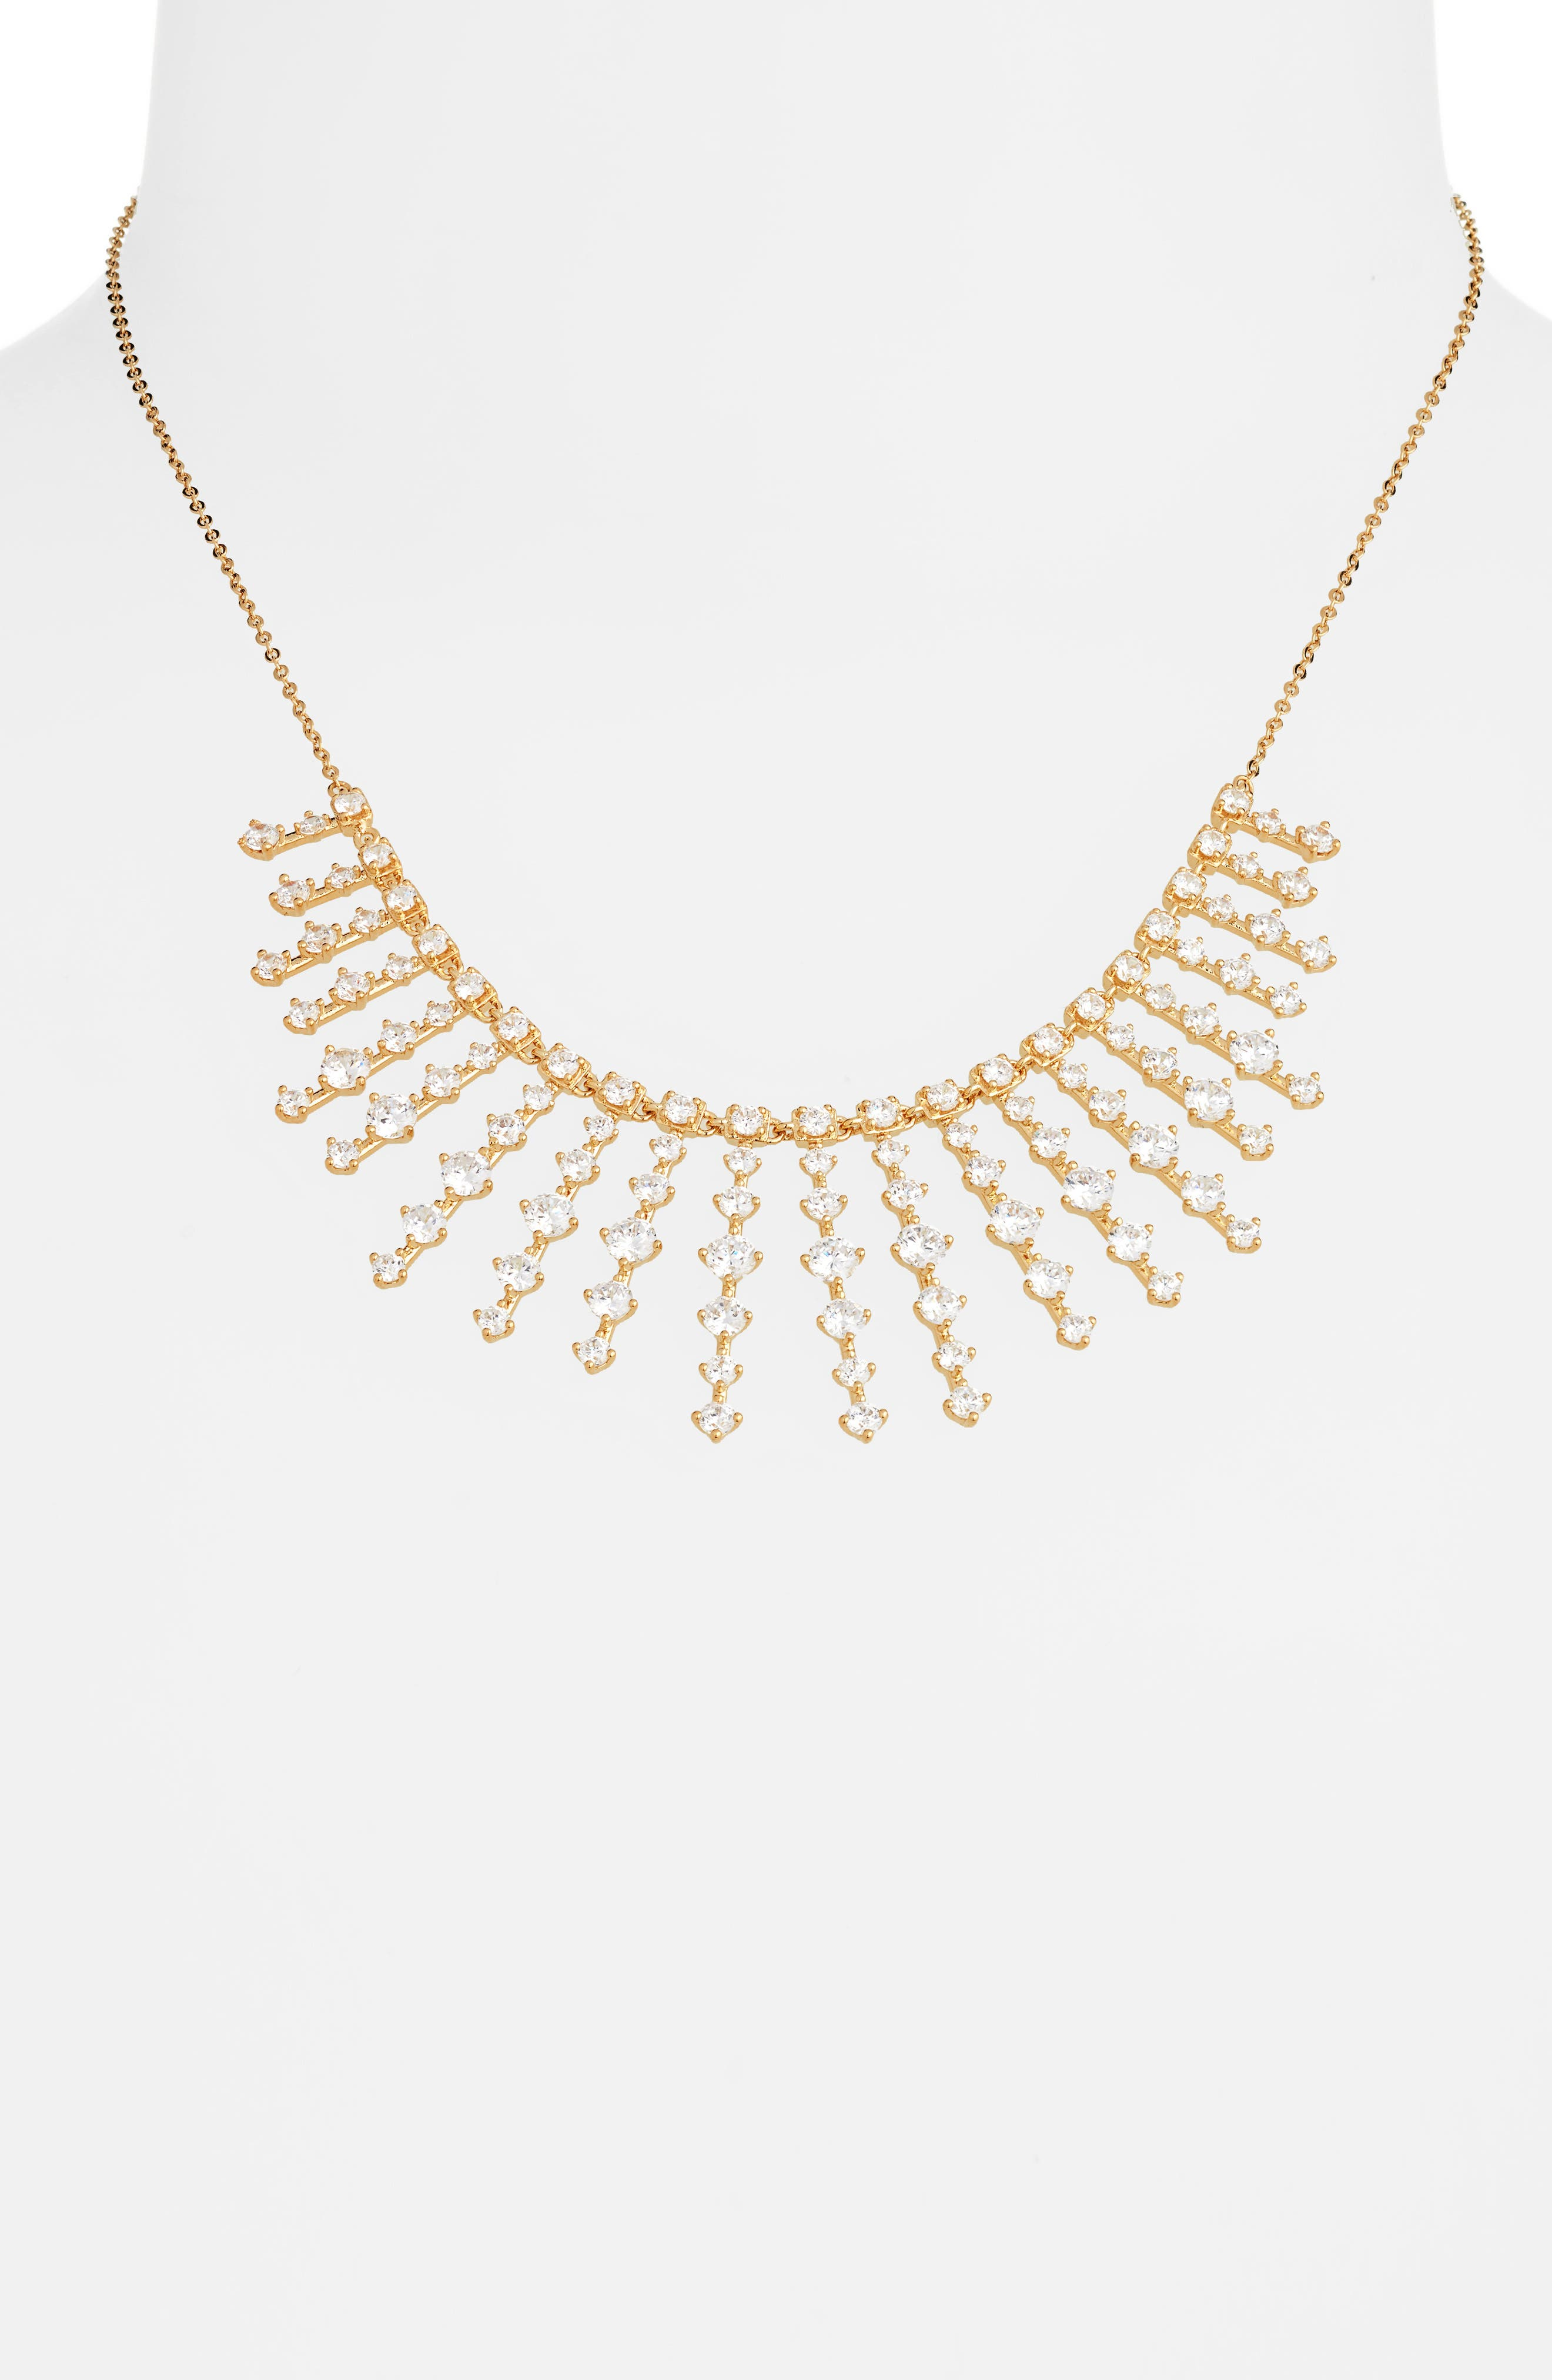 NORDSTROM,                             Stone Bar Bib Statement Necklace,                             Alternate thumbnail 2, color,                             CLEAR- GOLD